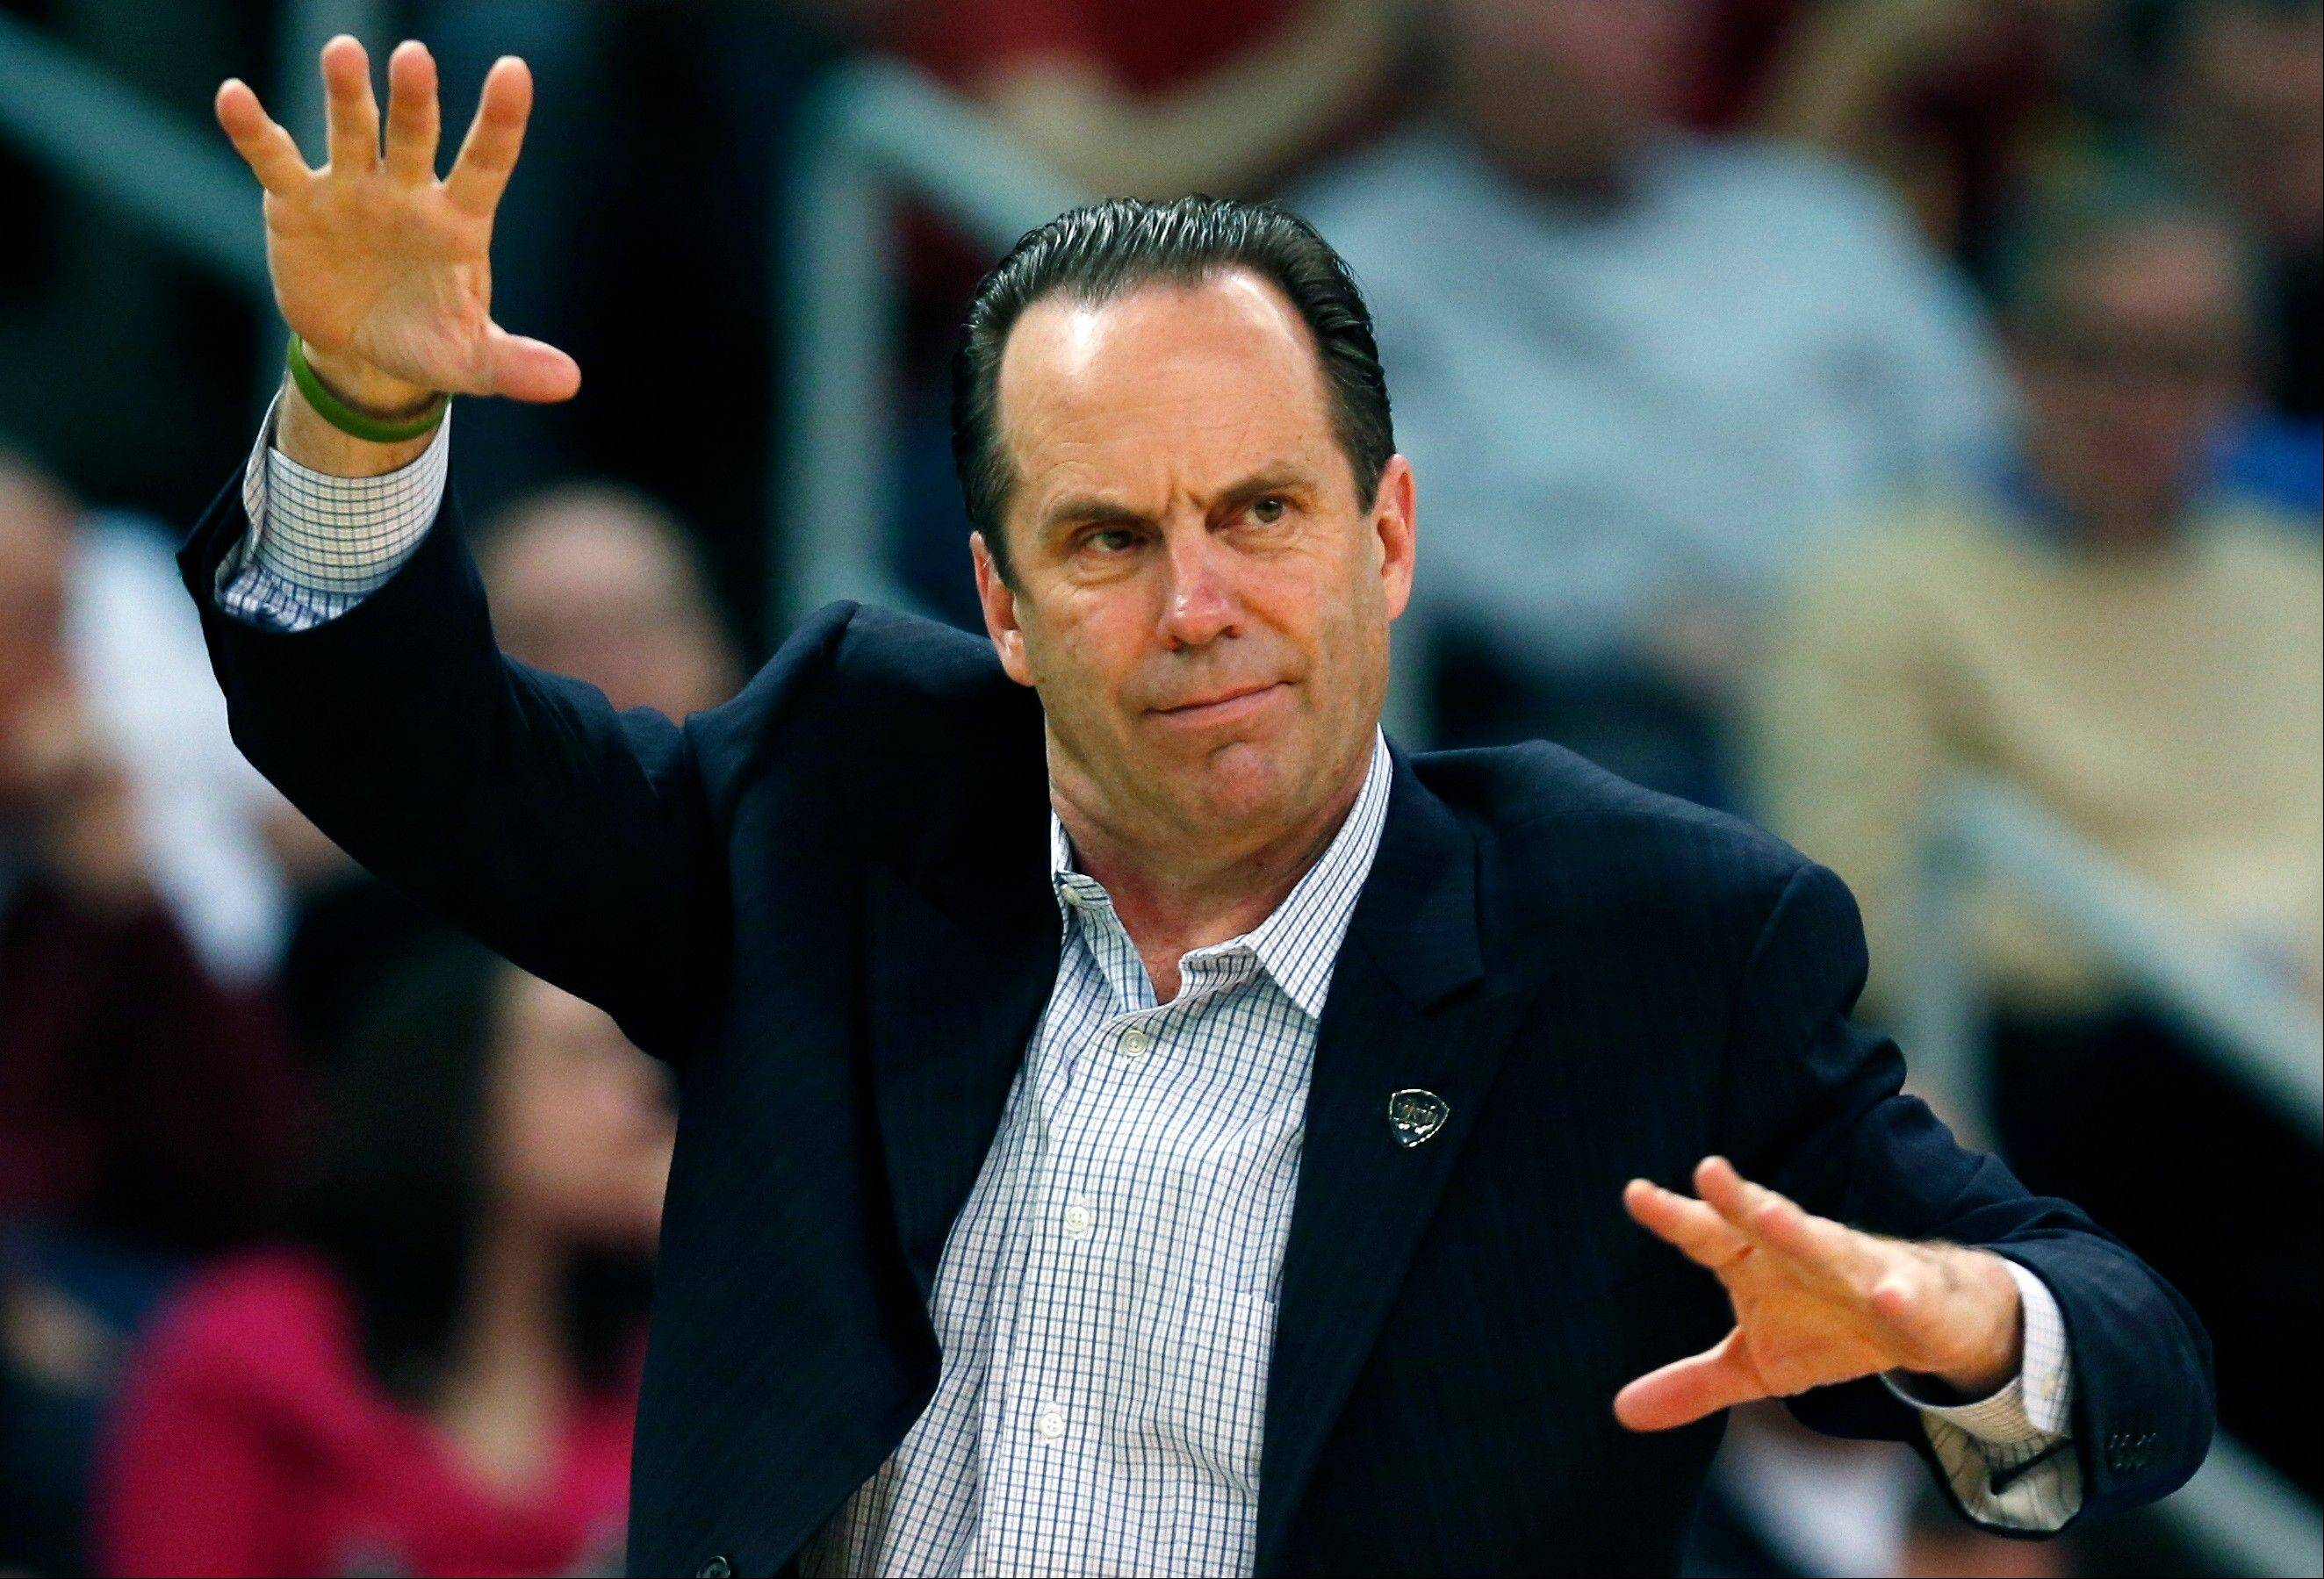 Notre Dame head coach Mike Brey signals his team in the second half.